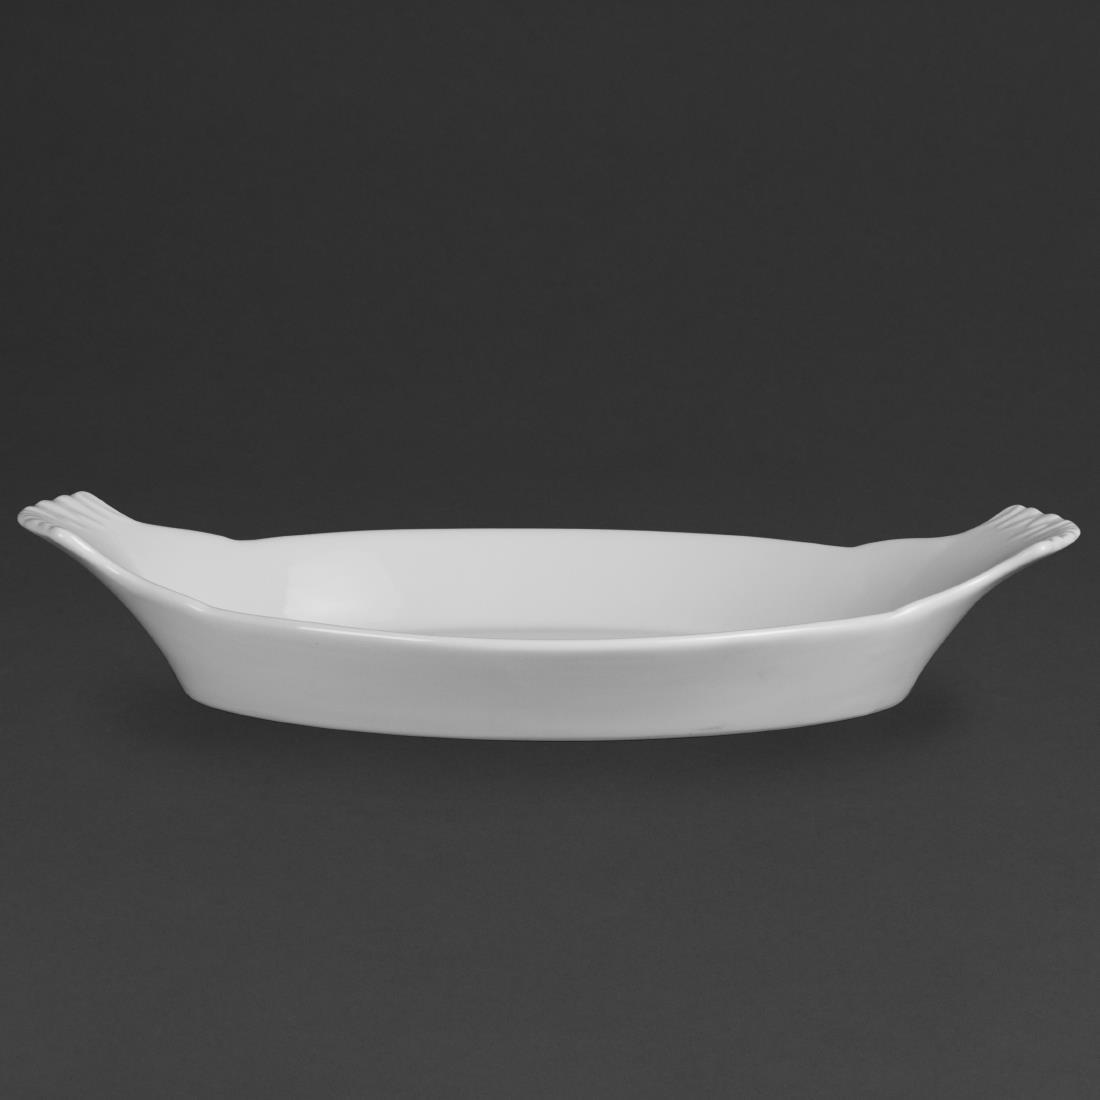 Olympia Whiteware Oval Eared Dishes 360x 199mm